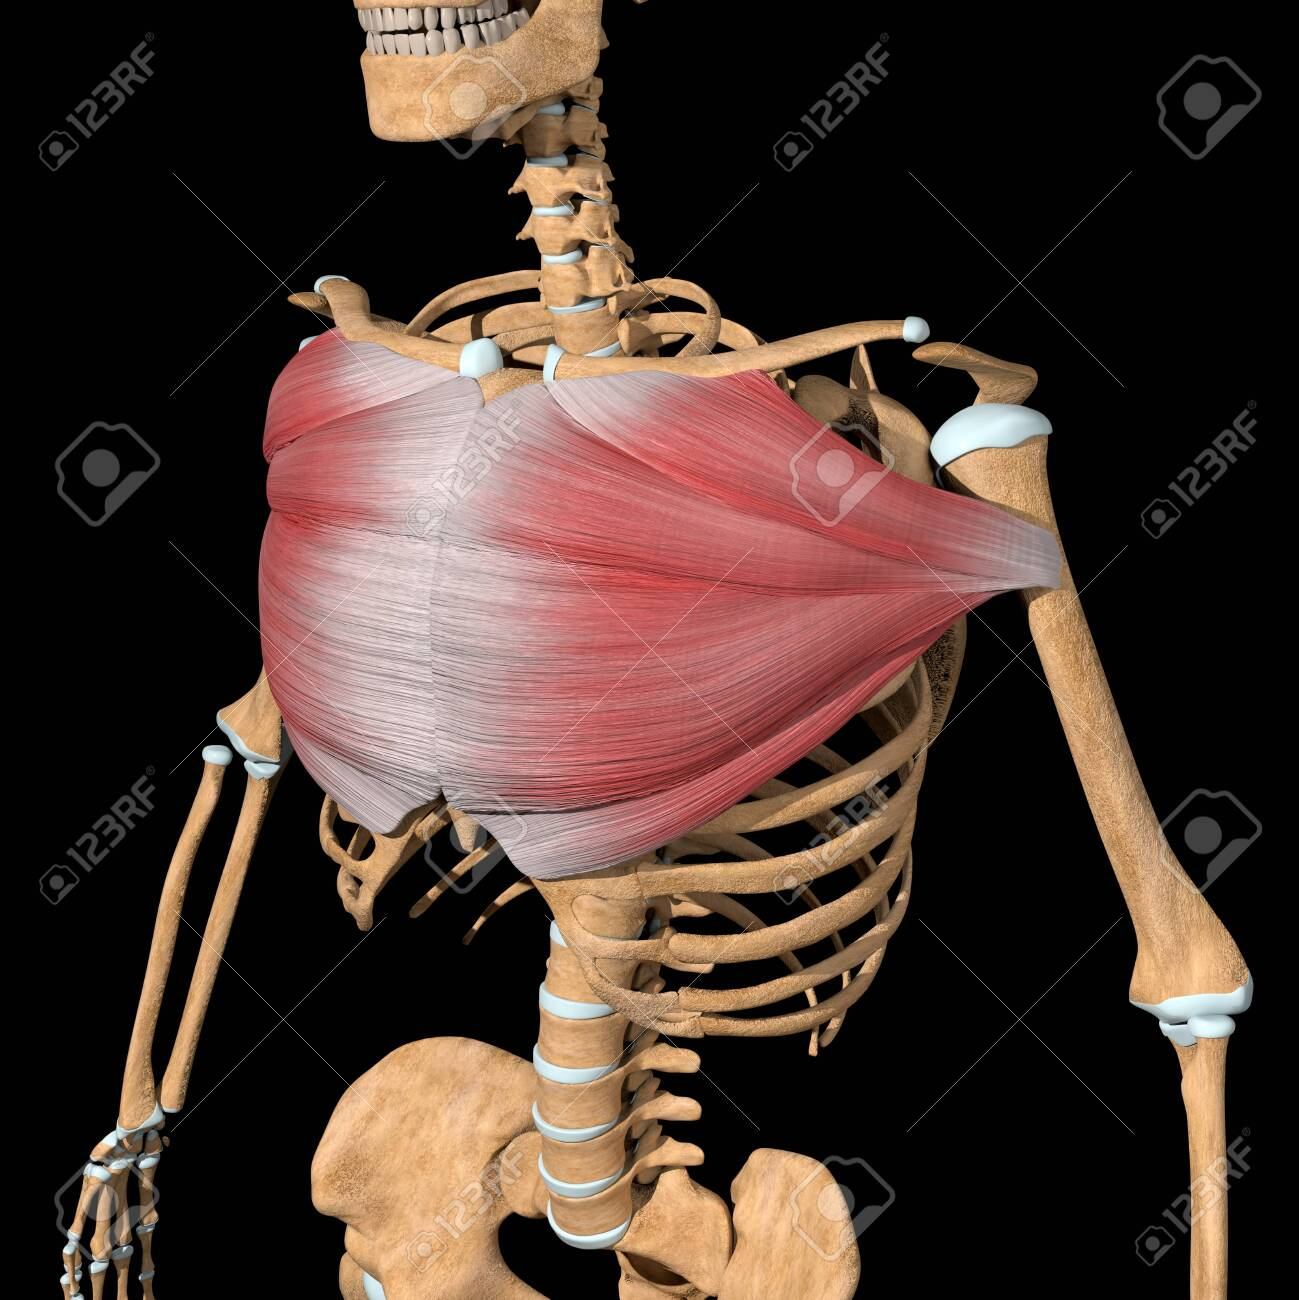 This 3d illustration shows the pectoralis major muscles on skeleton - 141583240